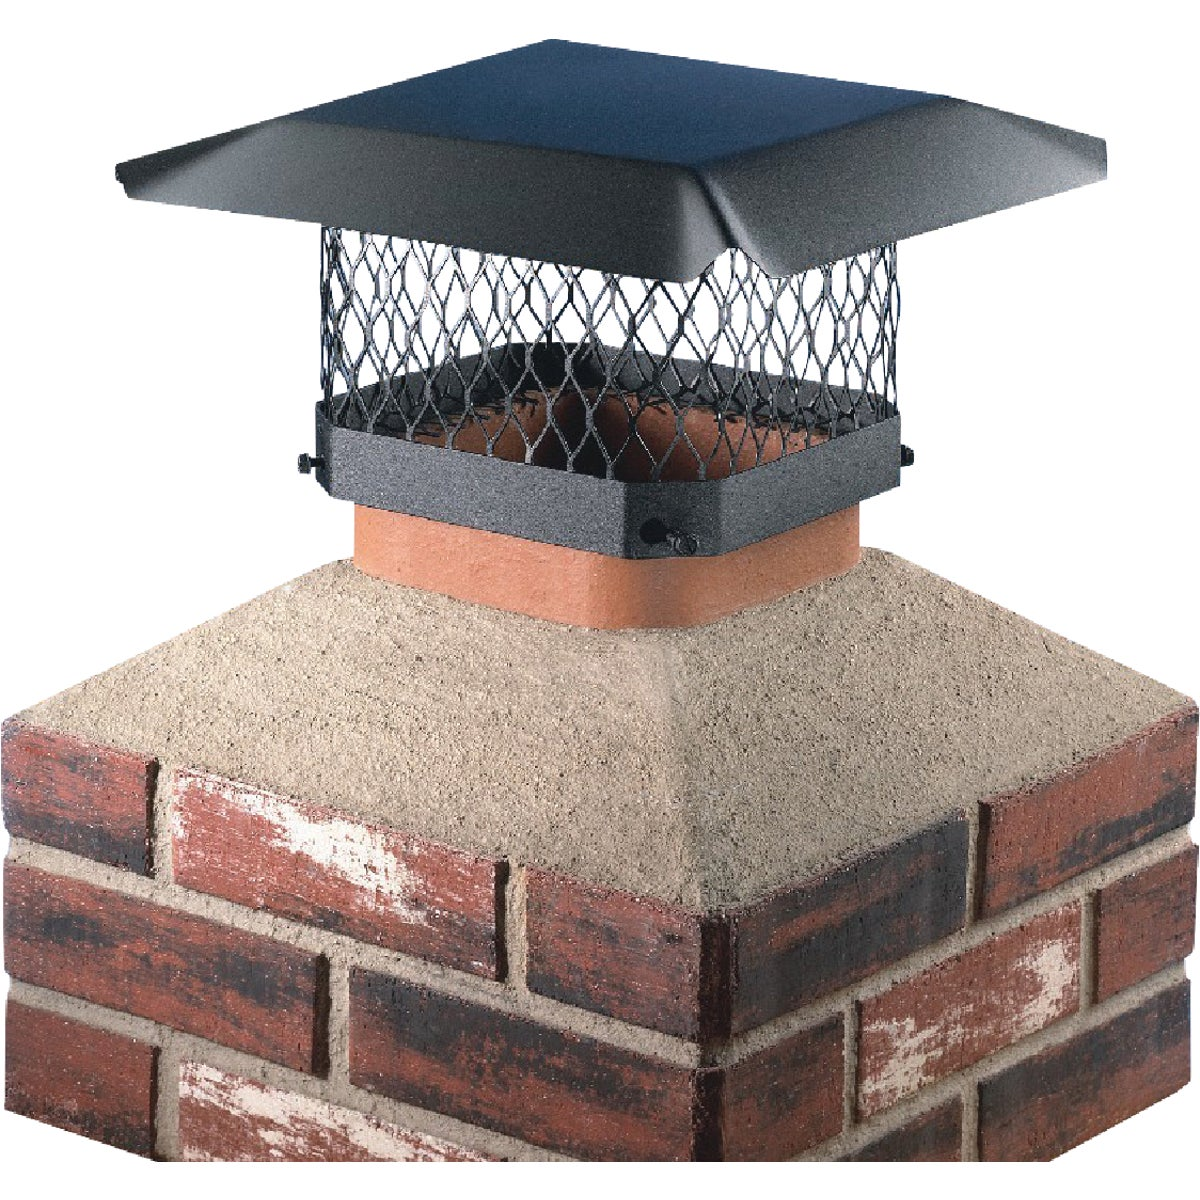 BLACK CHIMNEY COVER - SC913 by Hy C Company